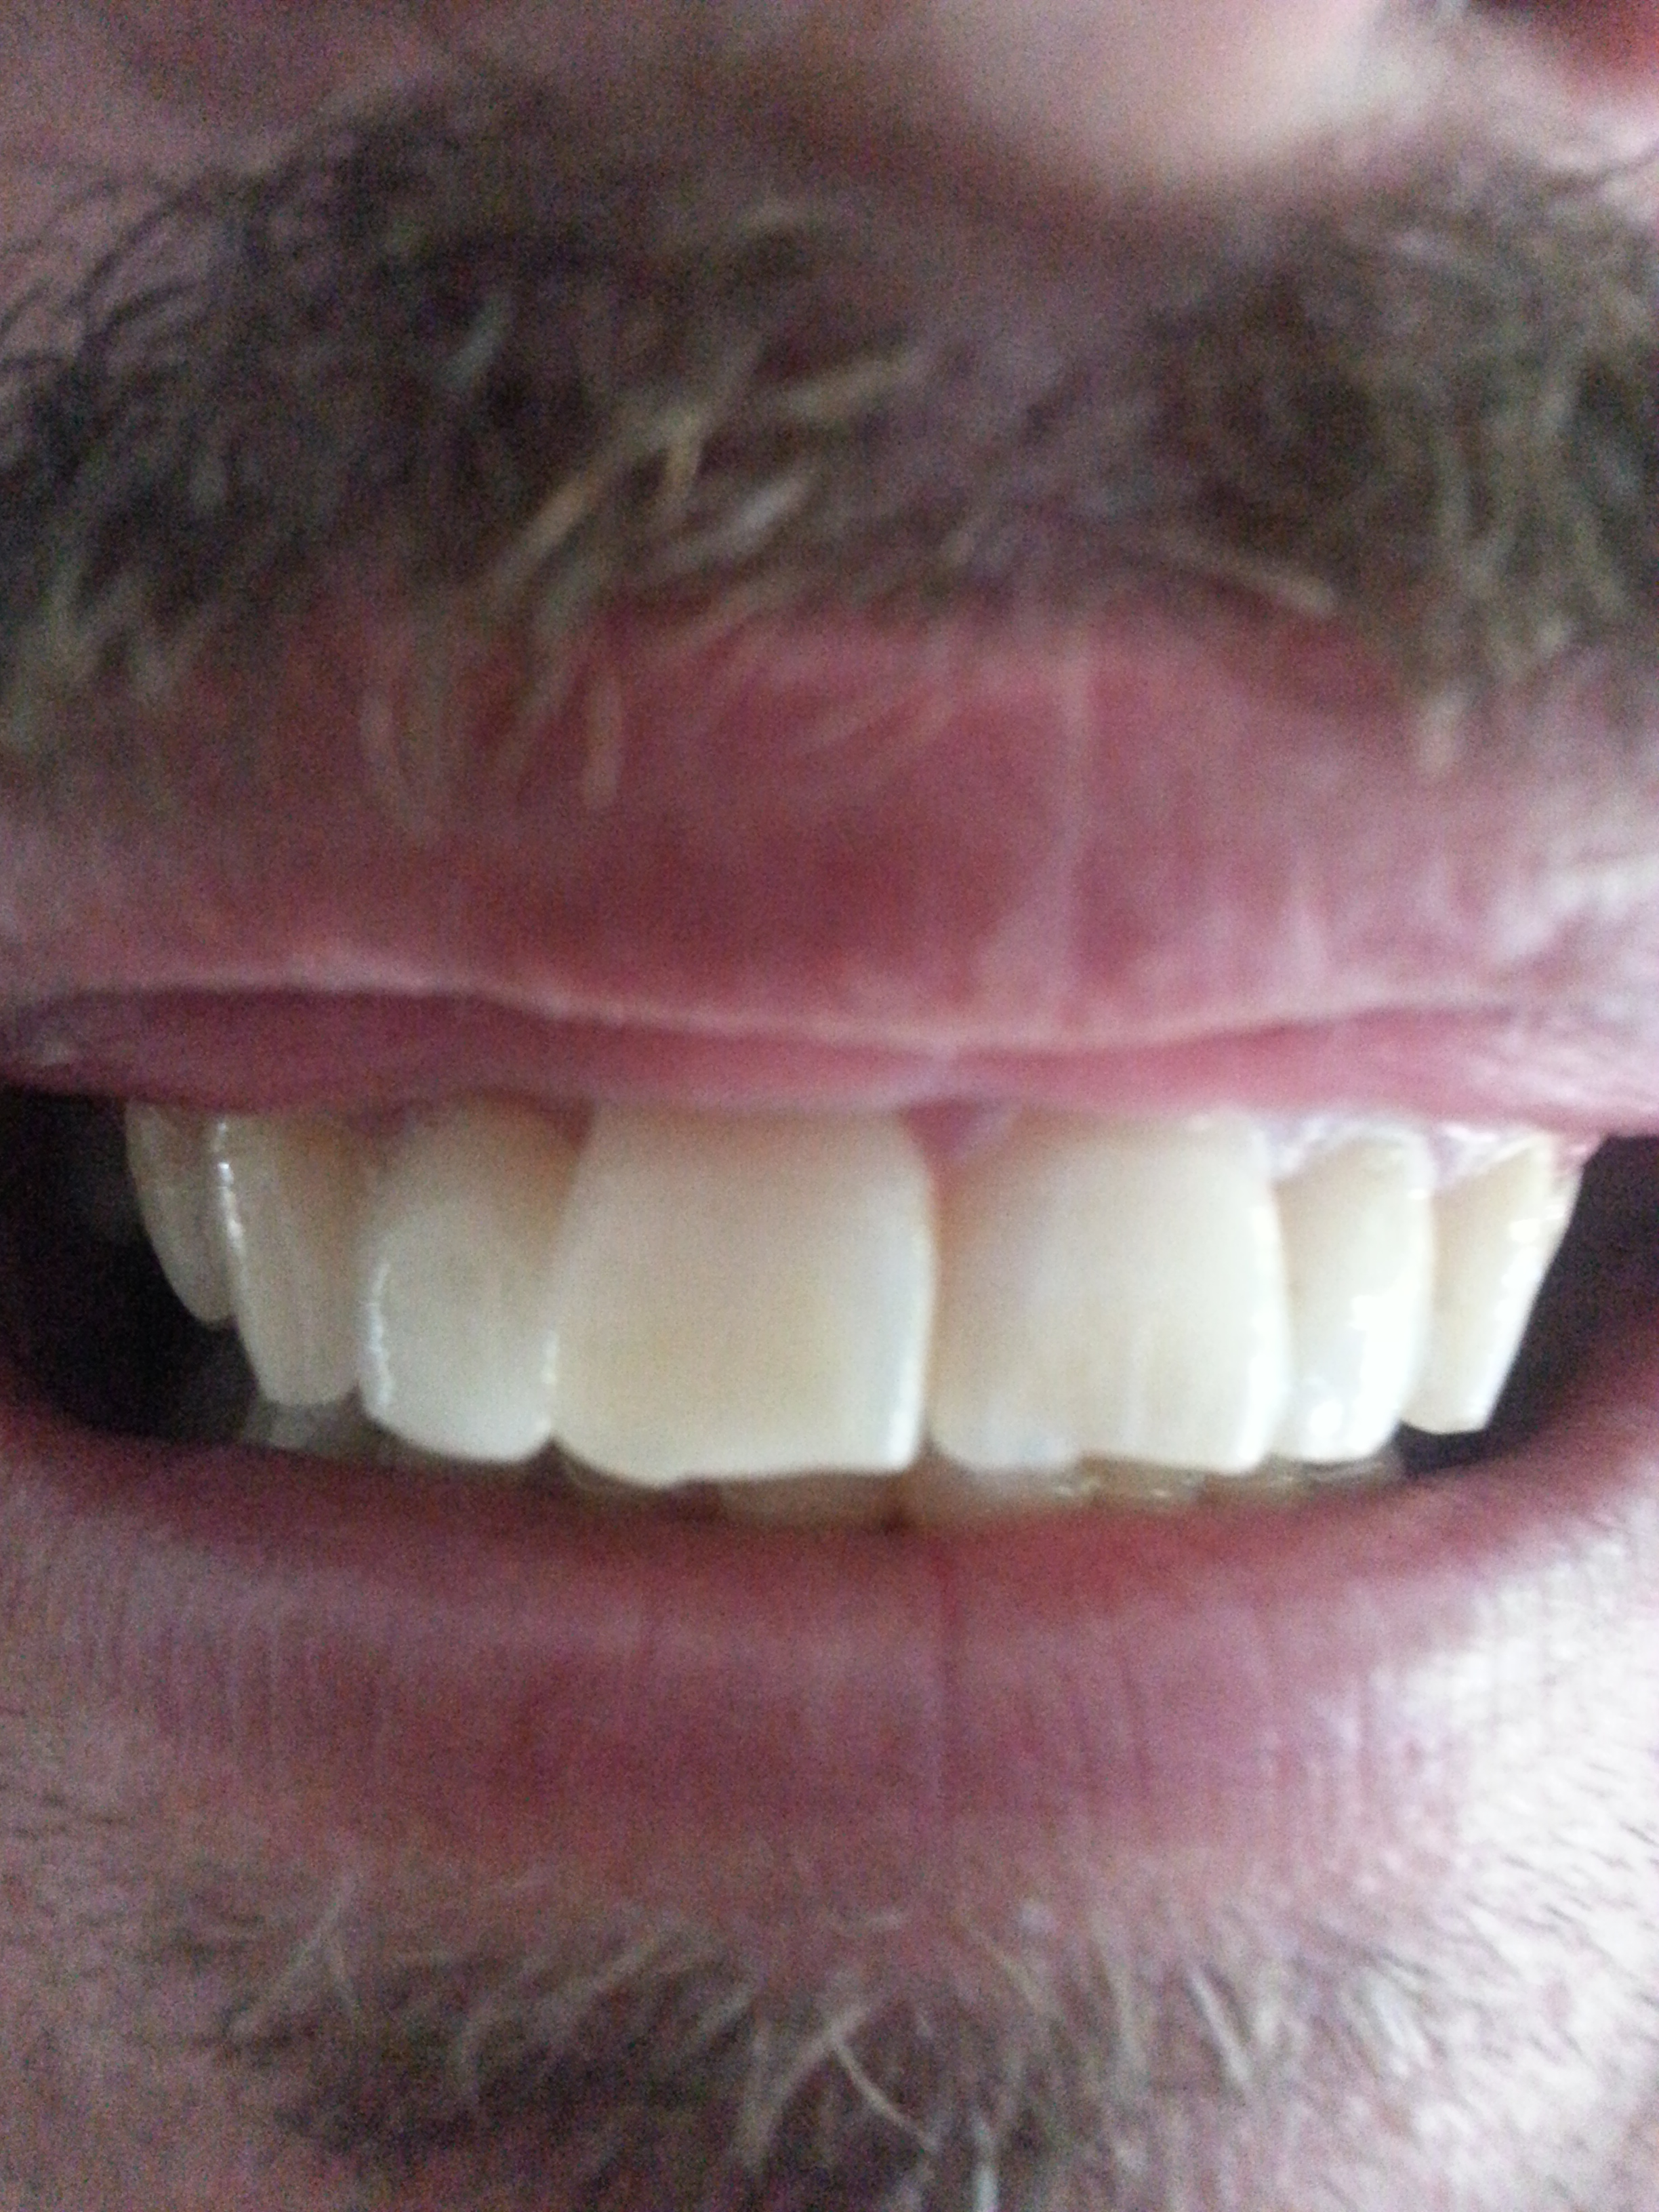 After New Porcelain crown and Tooth whitening in Single appointment